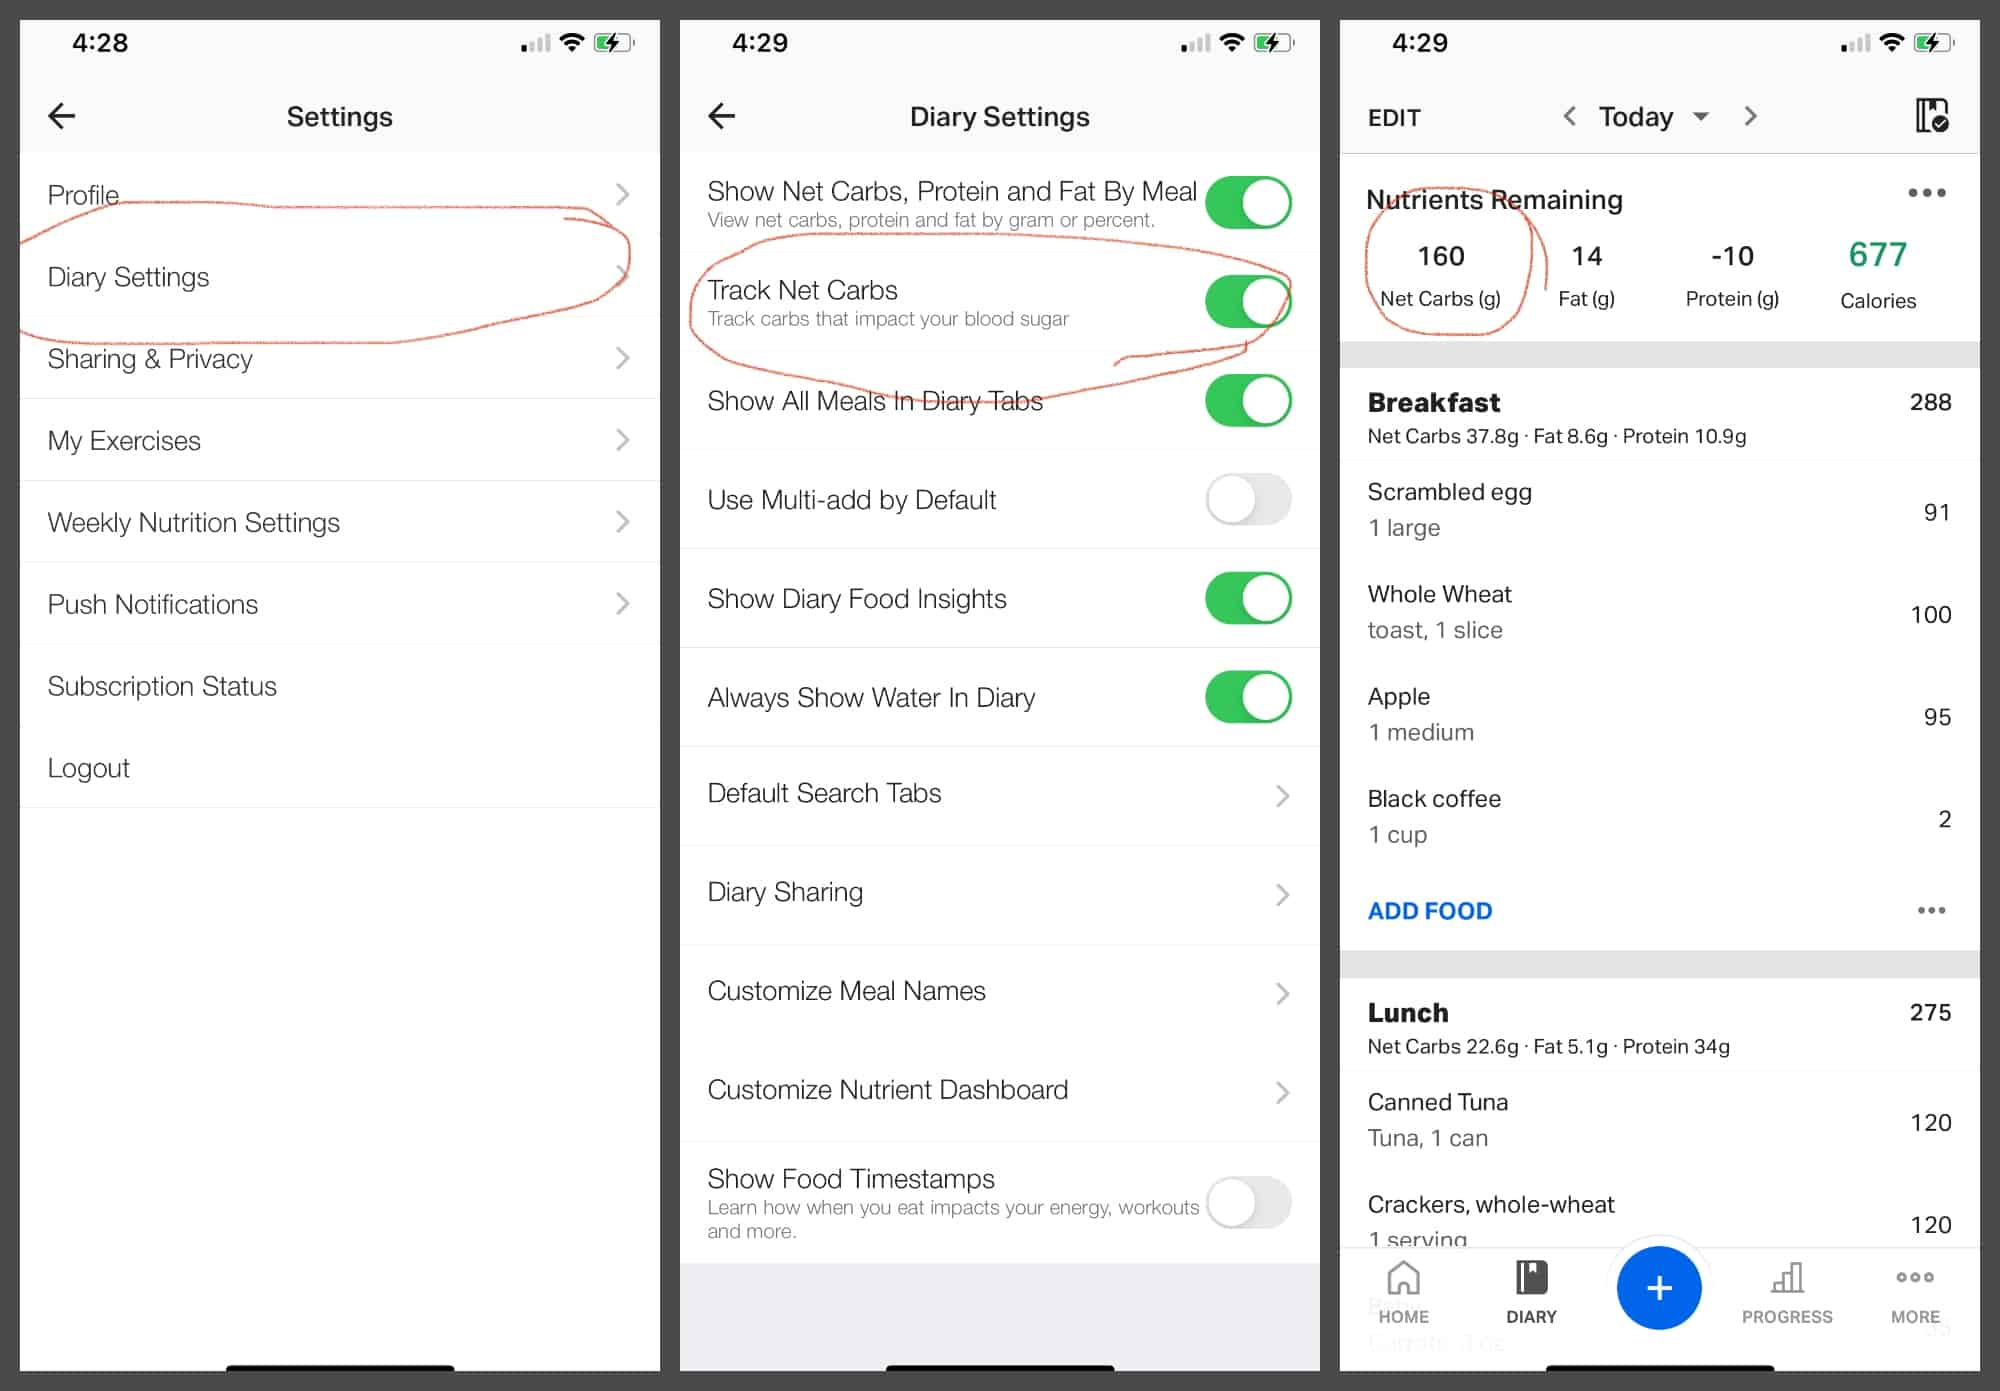 How to track net carbs in MyFitnessPal